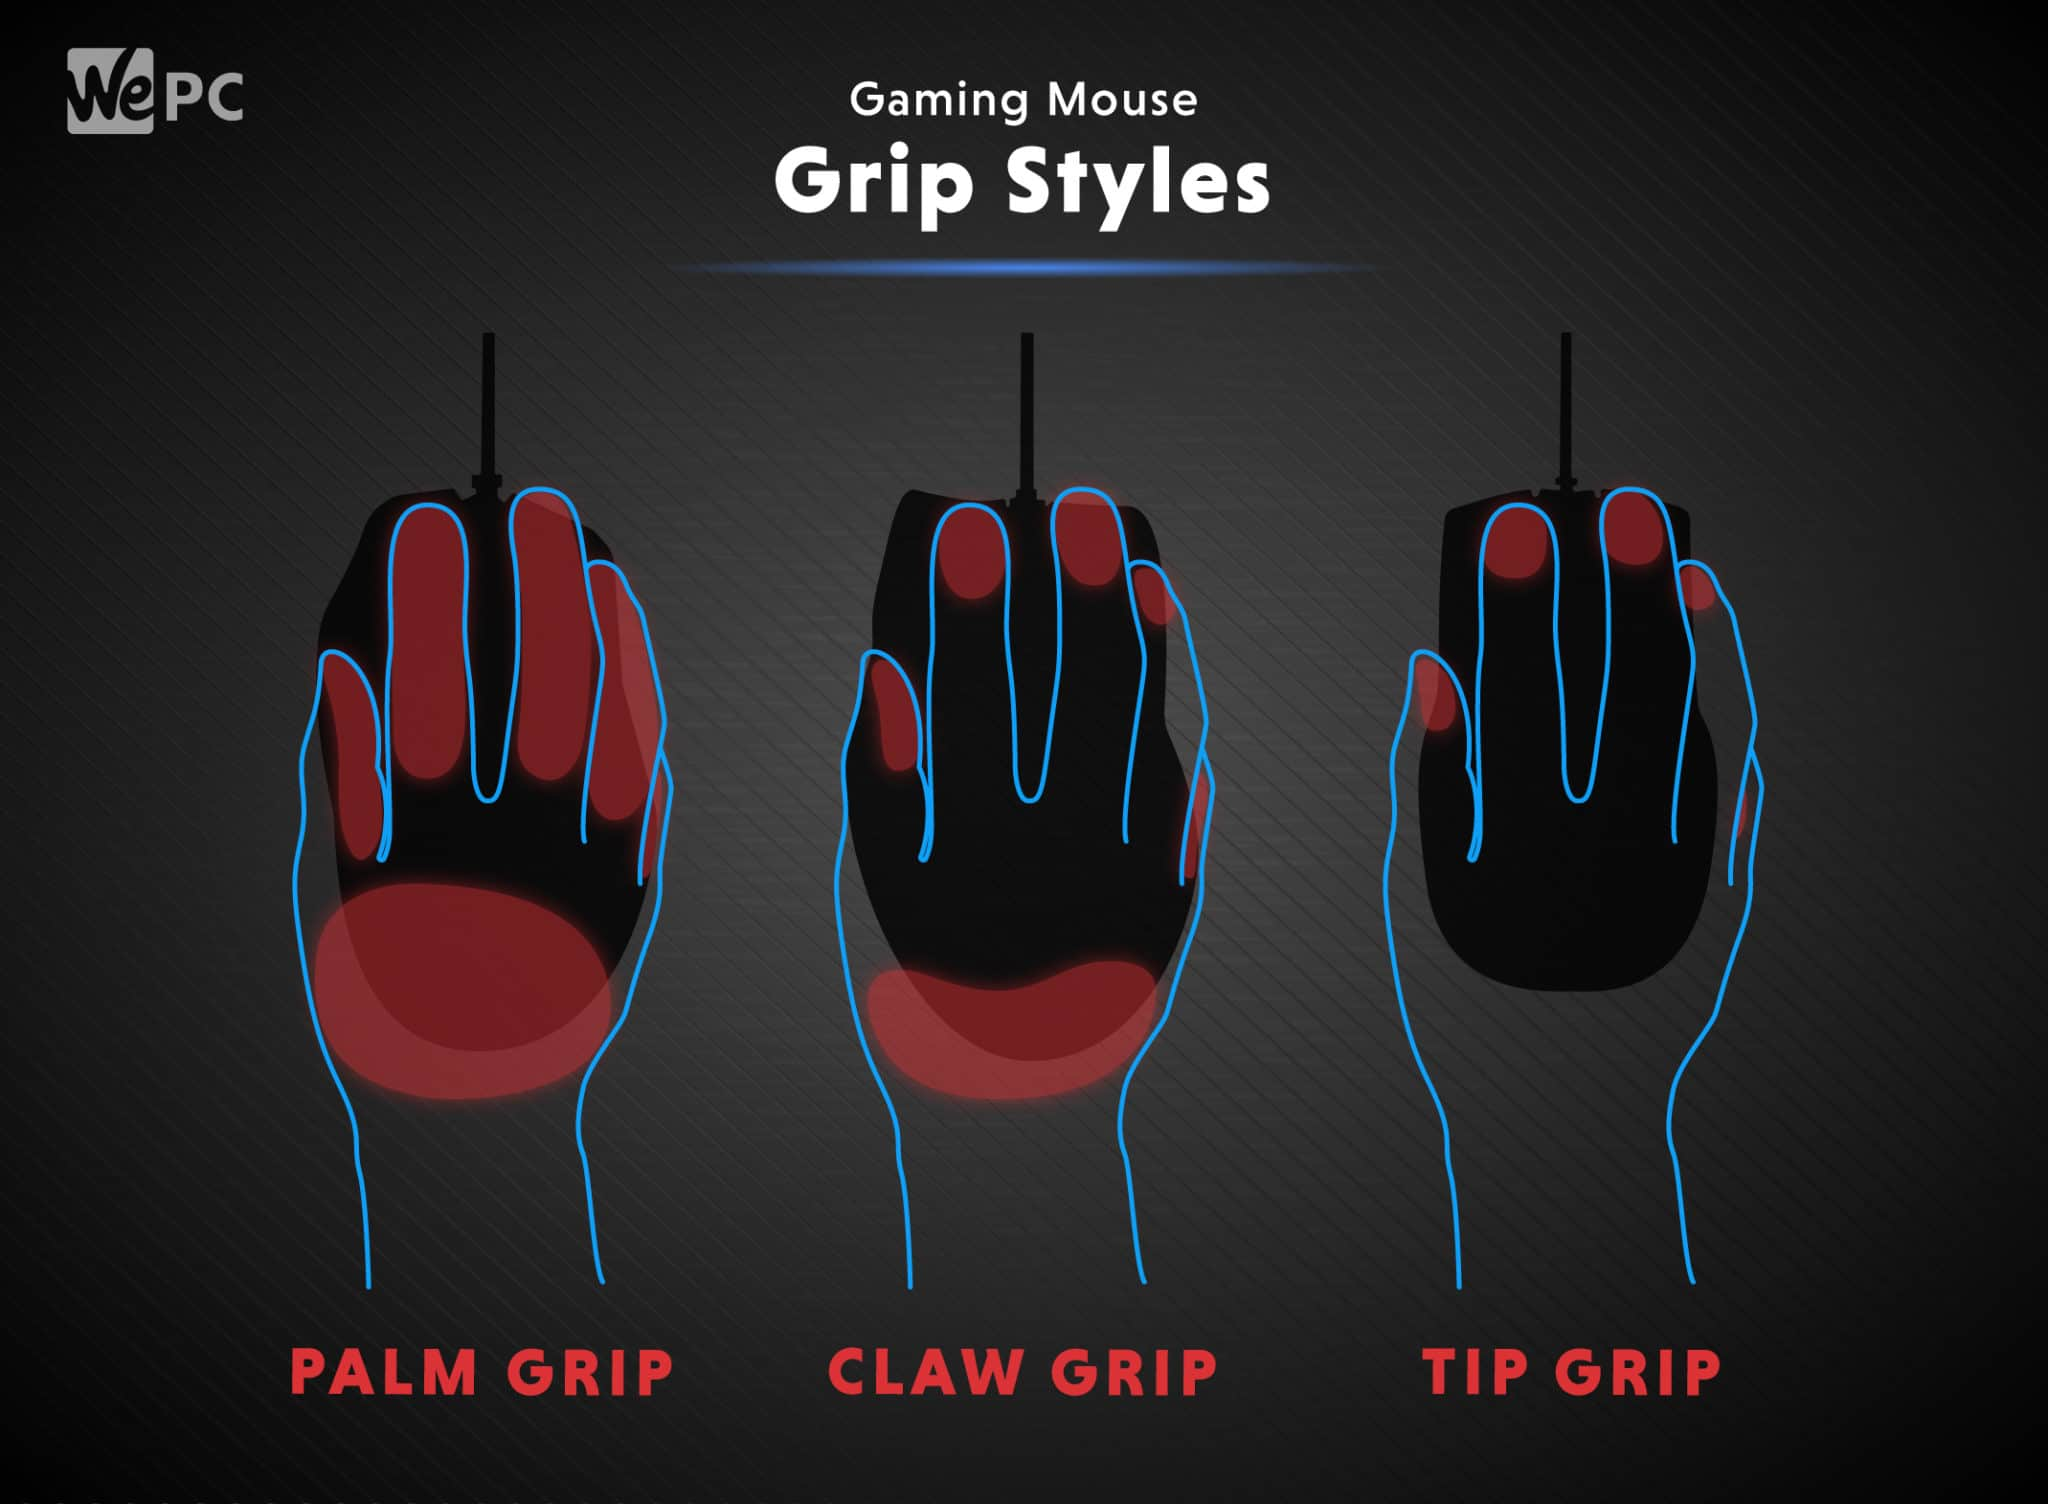 Gaming Mouse Grip Styles